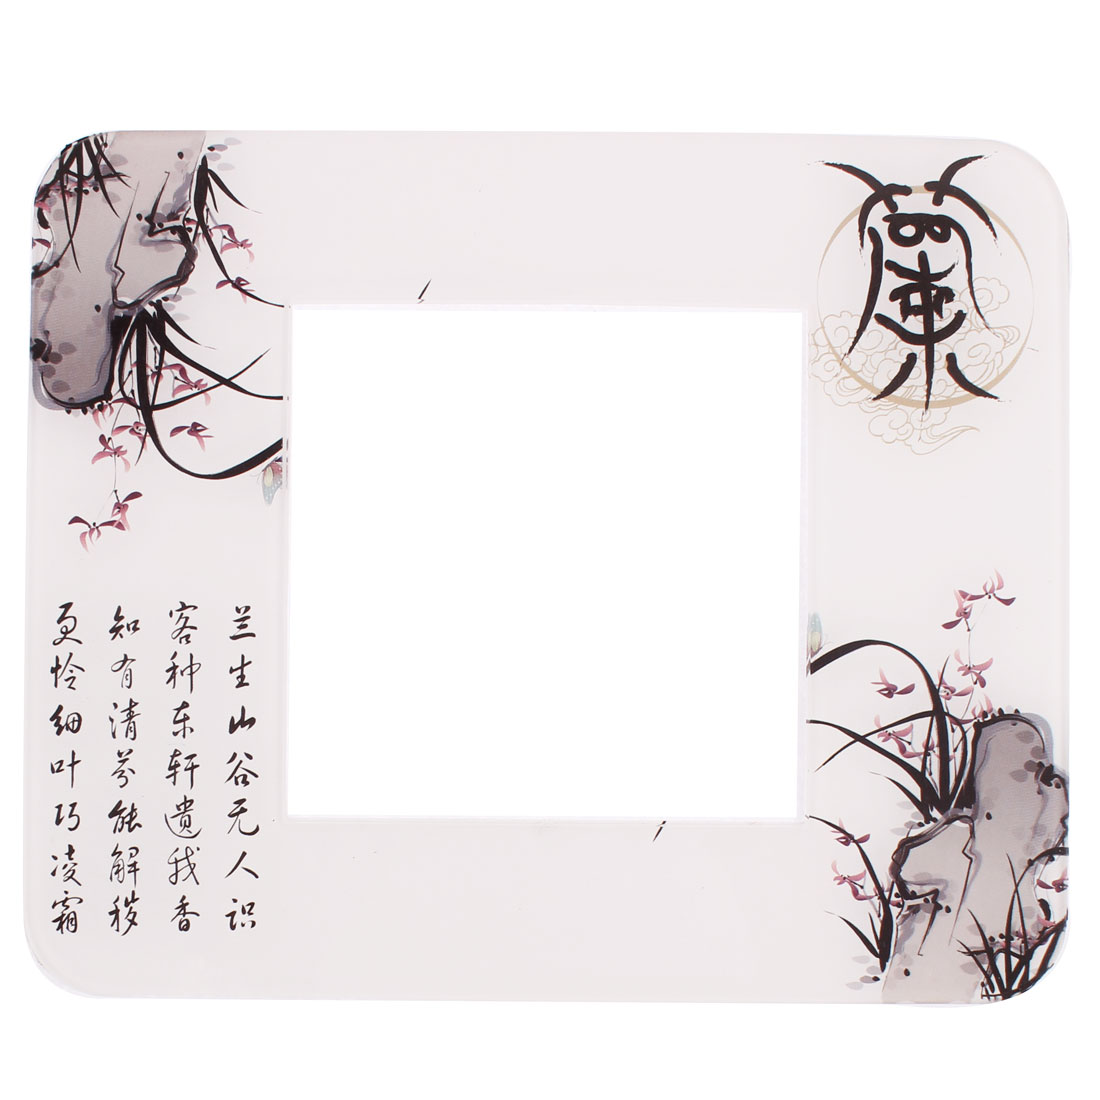 Chinese Poem Printed Switch Sticker Socket Protective Cover